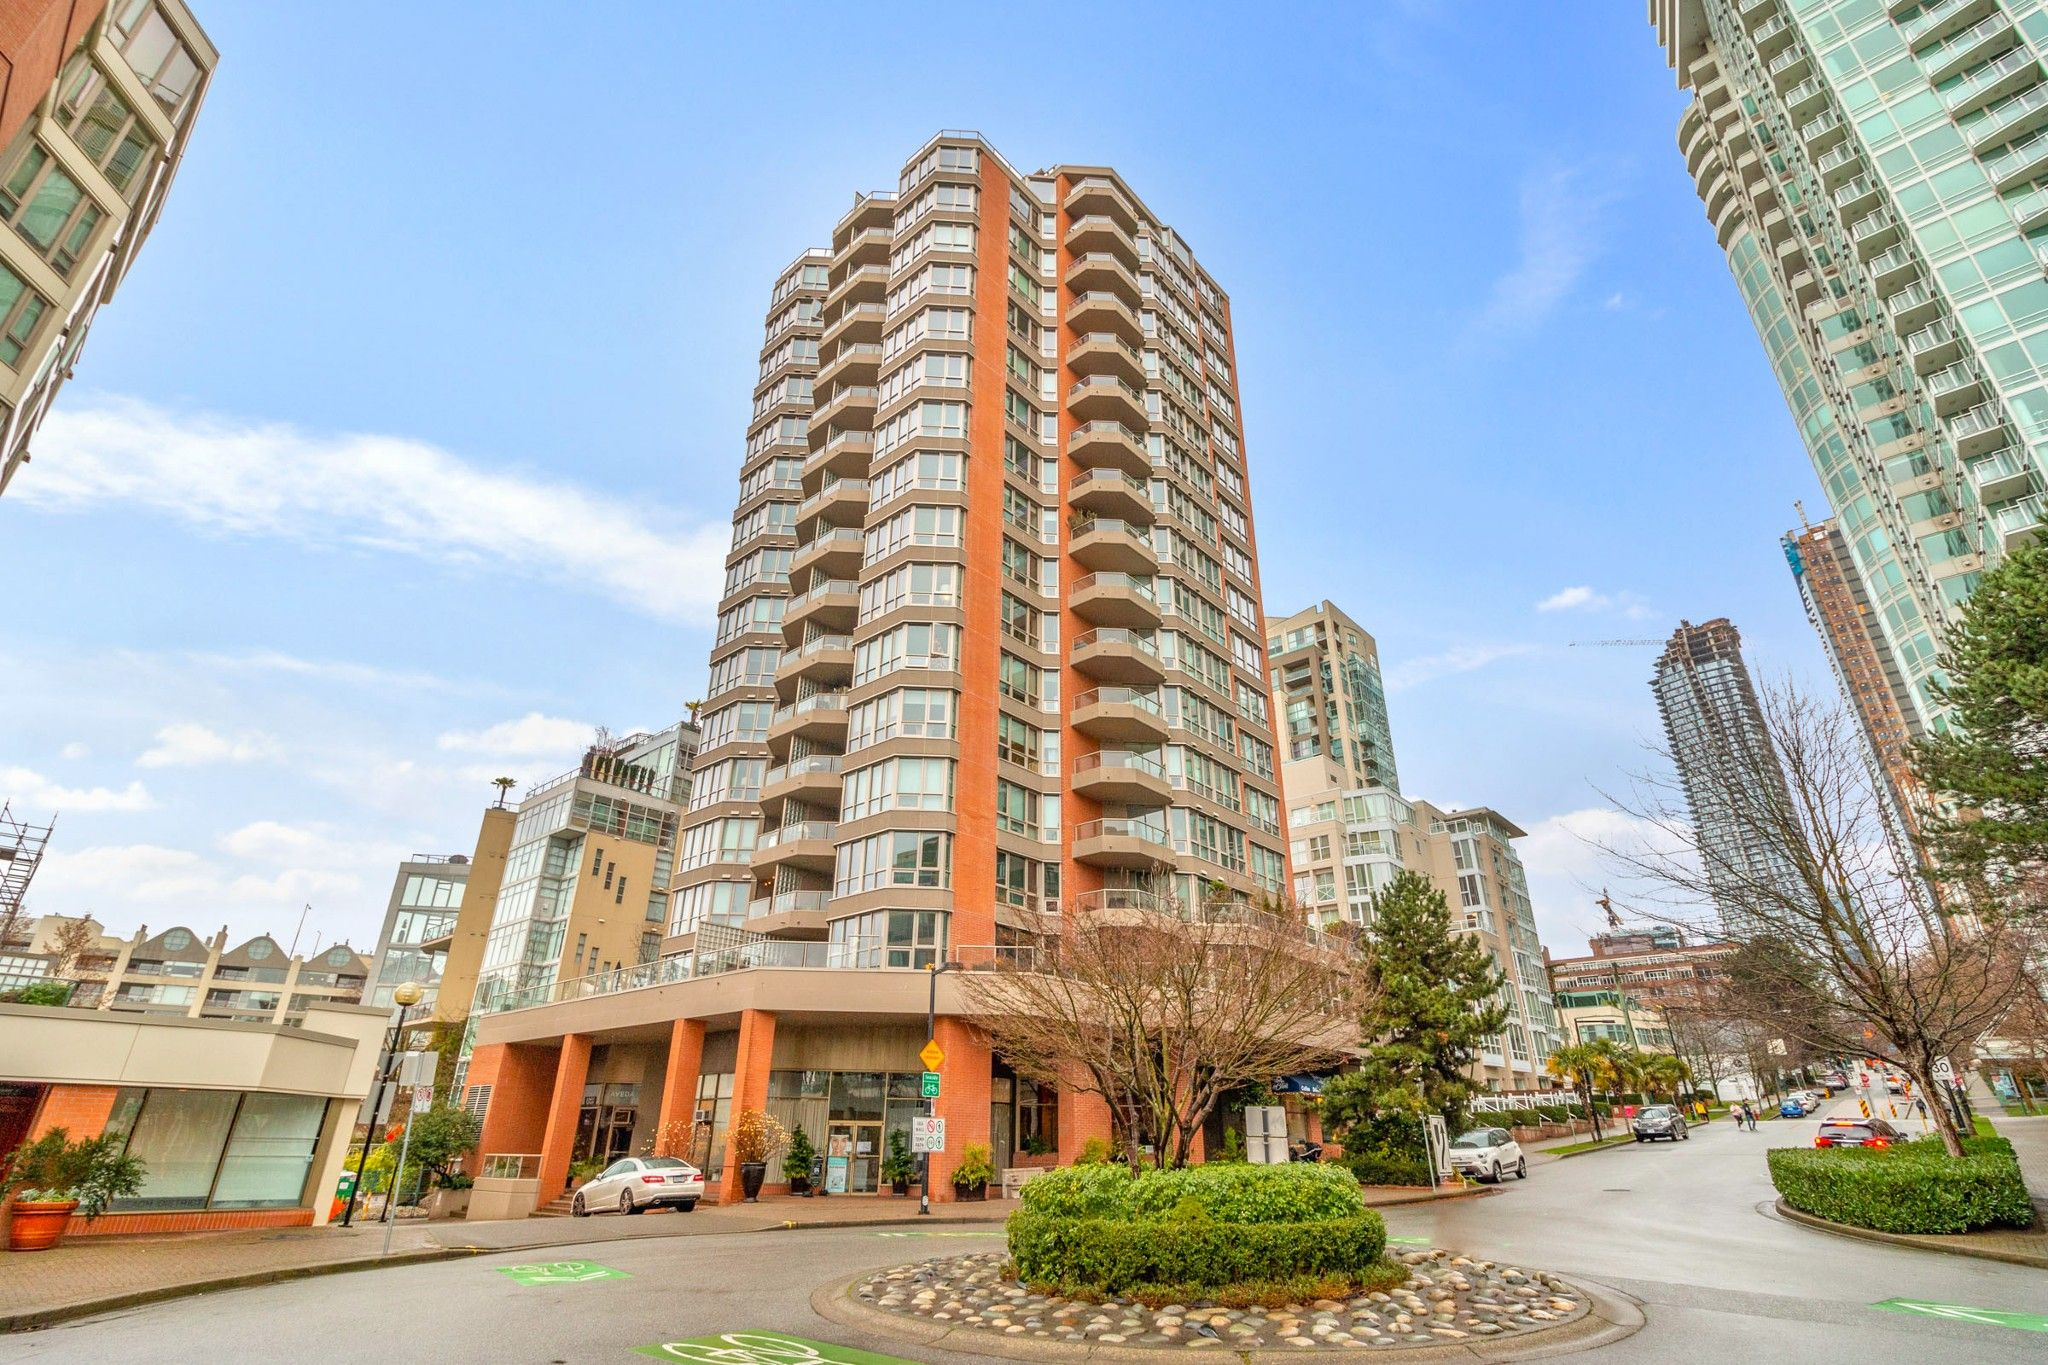 Main Photo: 1002 1625 HORNBY STREET in Vancouver: Yaletown Condo for sale (Vancouver West)  : MLS®# R2581352